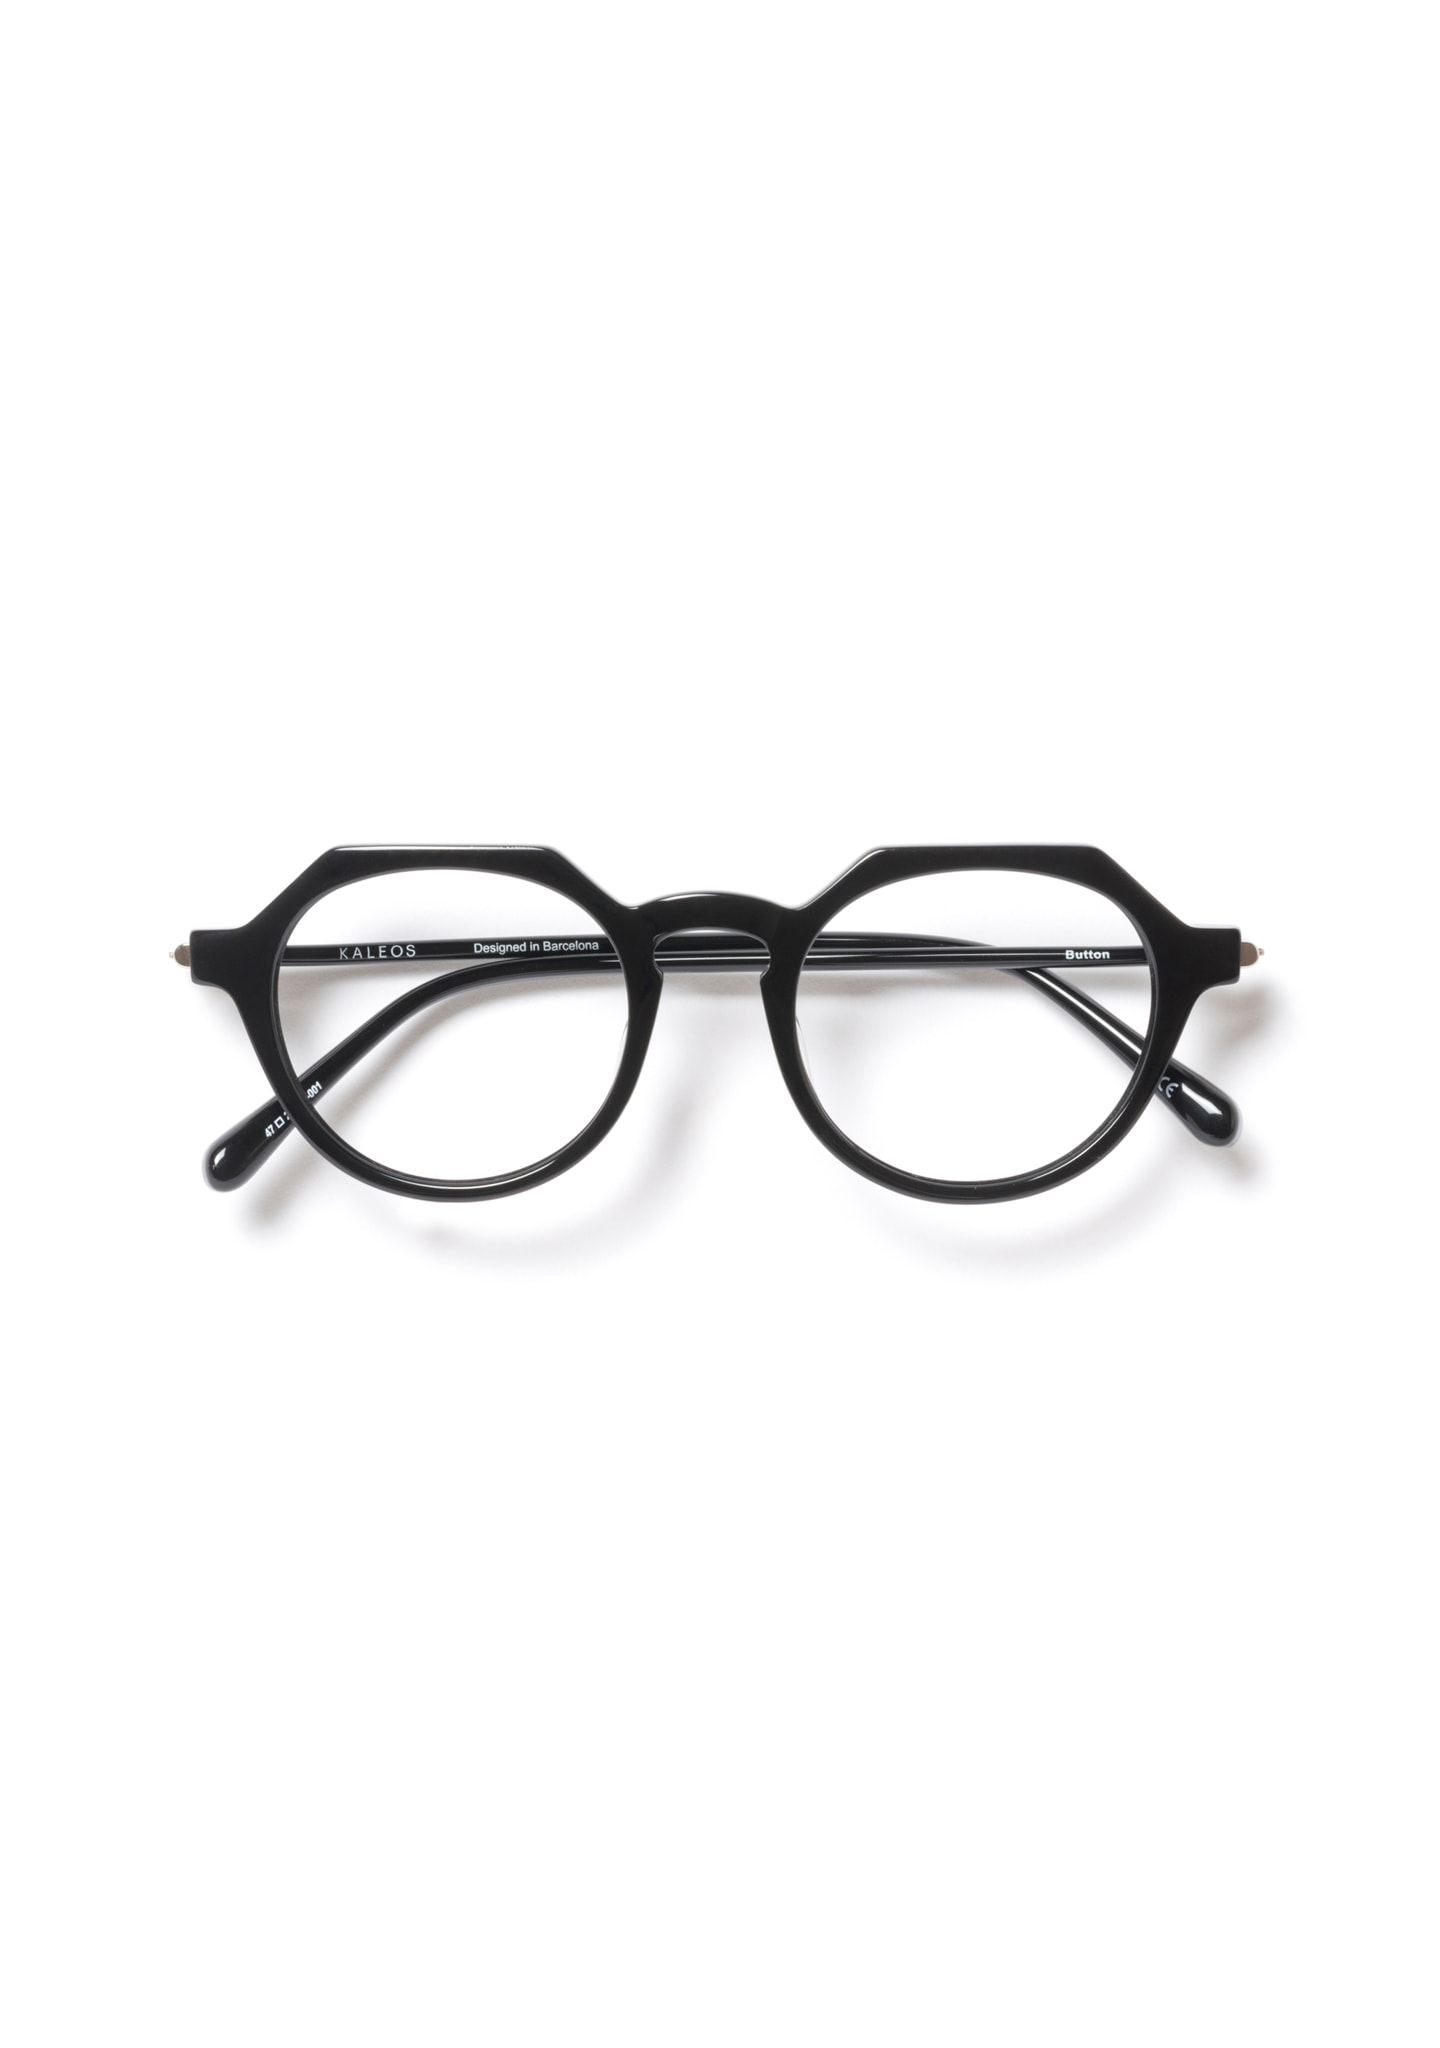 1bc21bbe322 Eyeglasses Kaleos Button 1026092